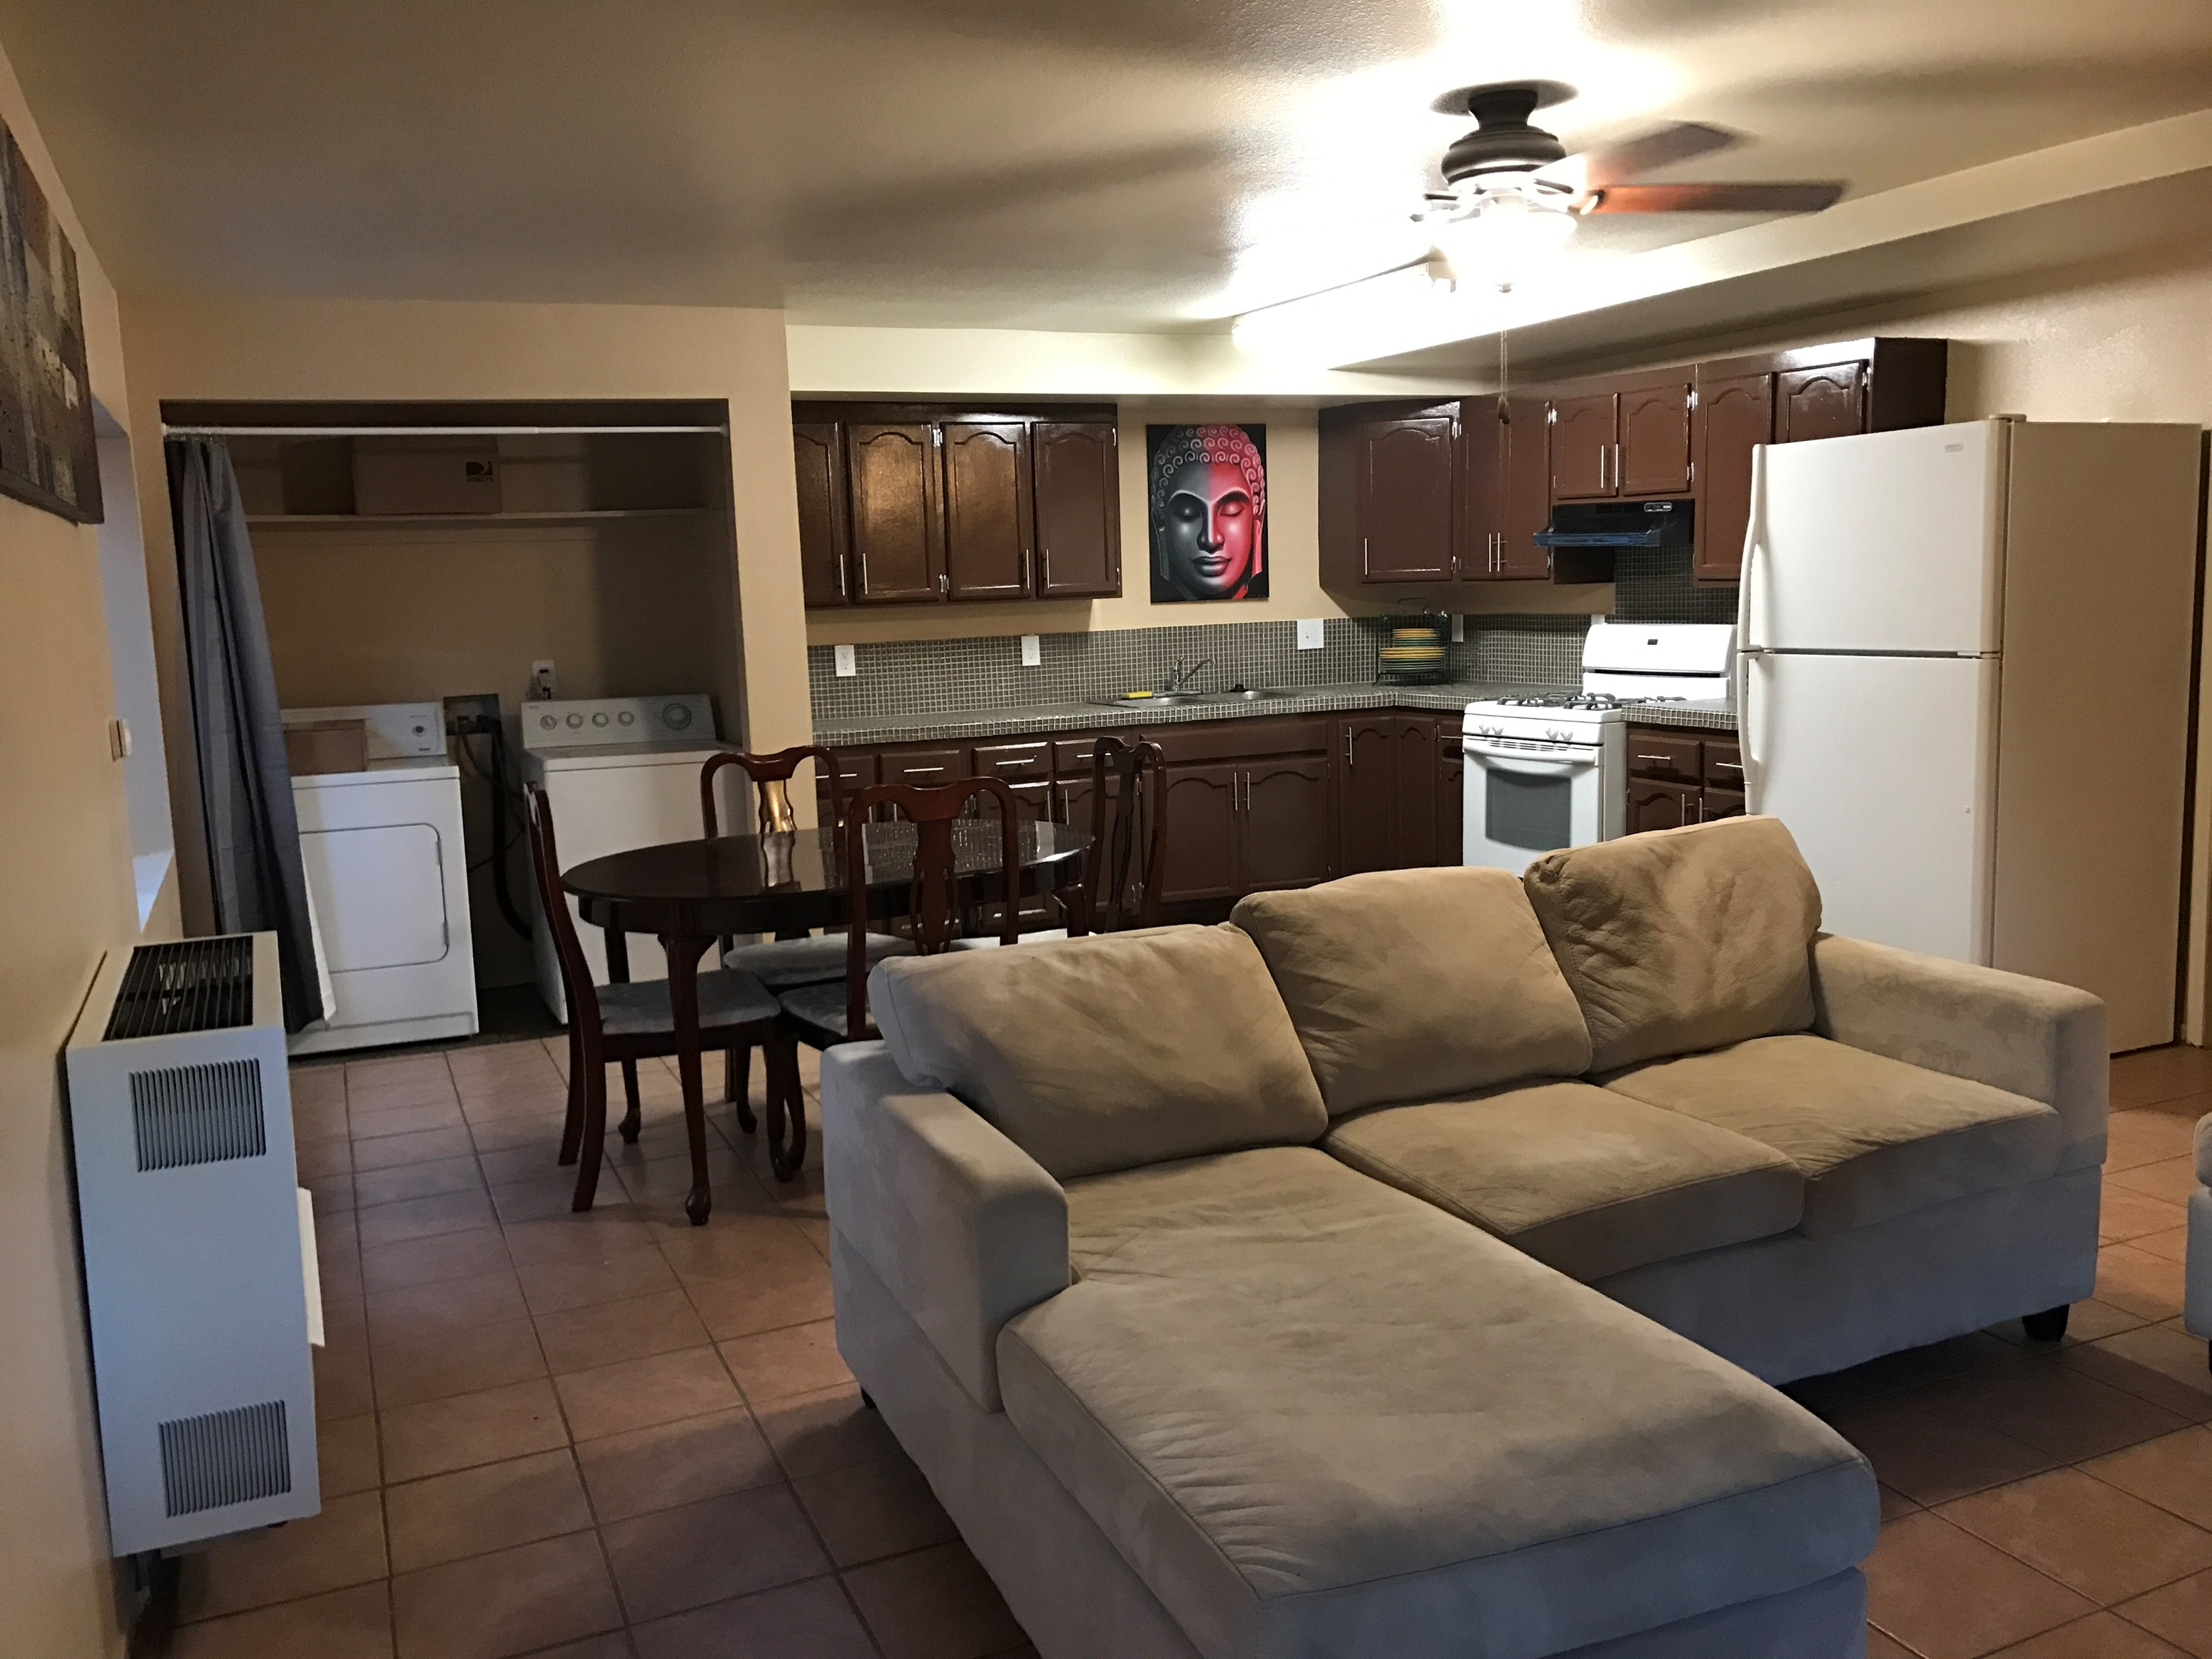 Rooms For Rent West Covina Ca Apartments House Commercial Space